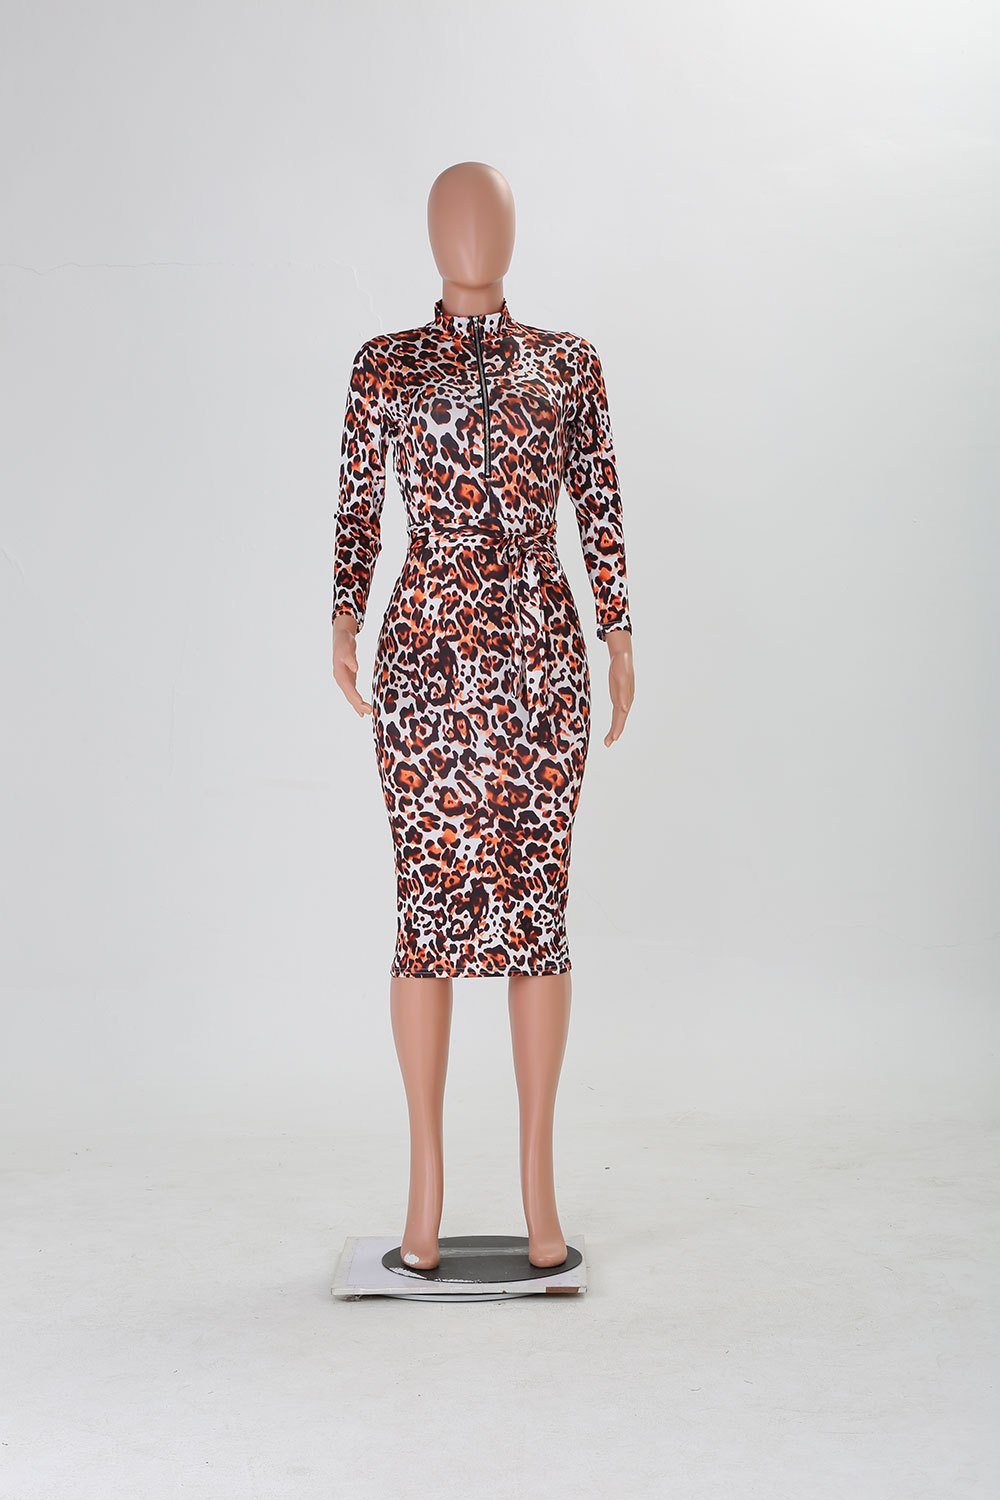 Froal Print Zipper Bodycon Dress - Asia-Peak